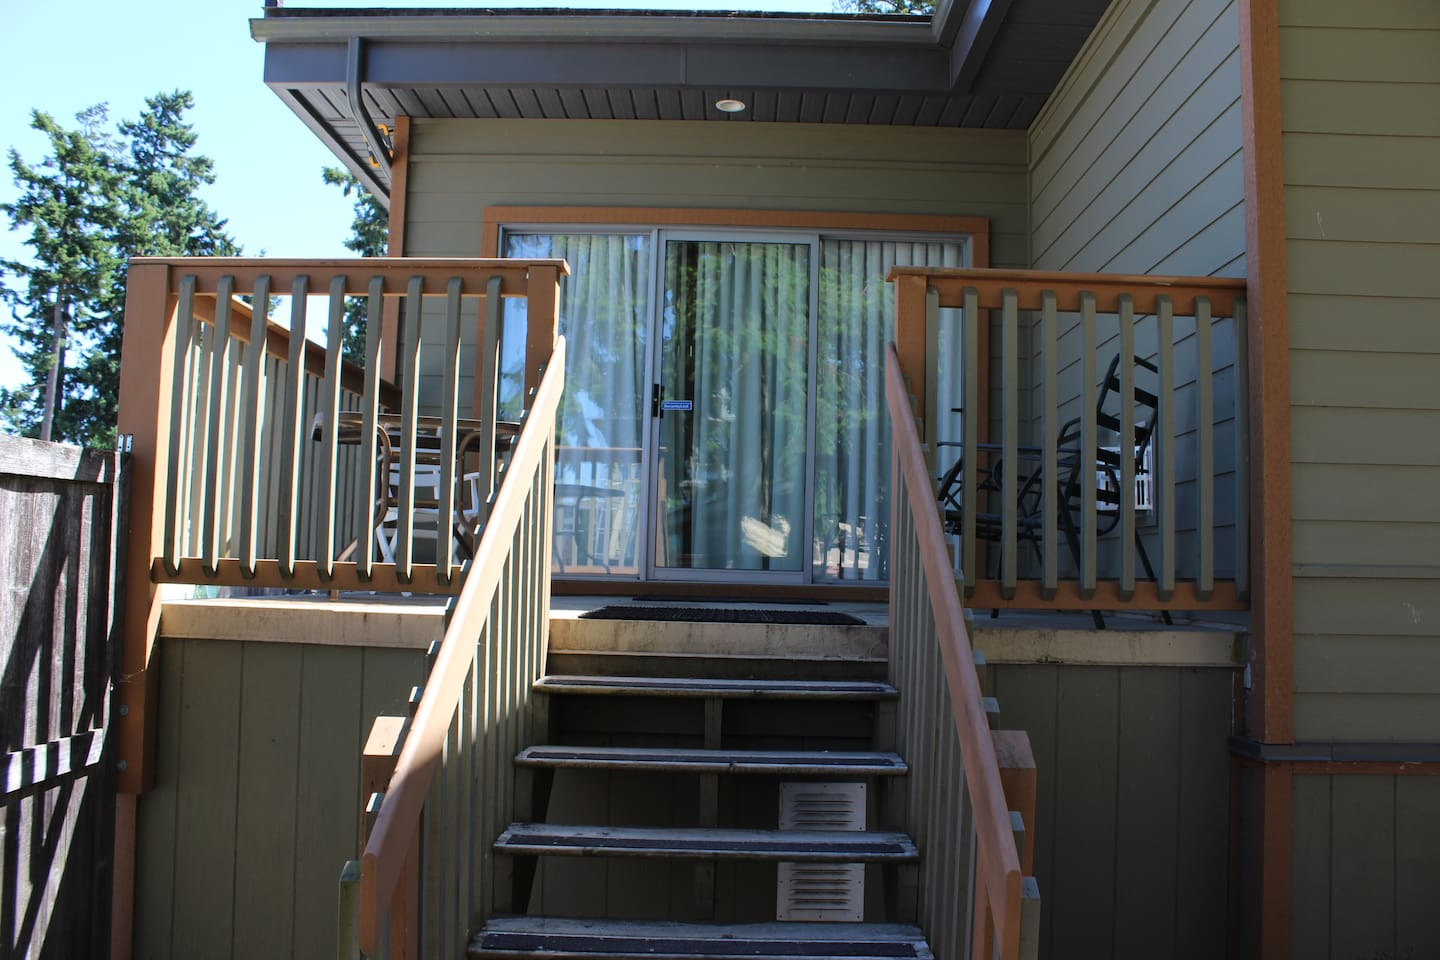 Stairs leading up to deck and door